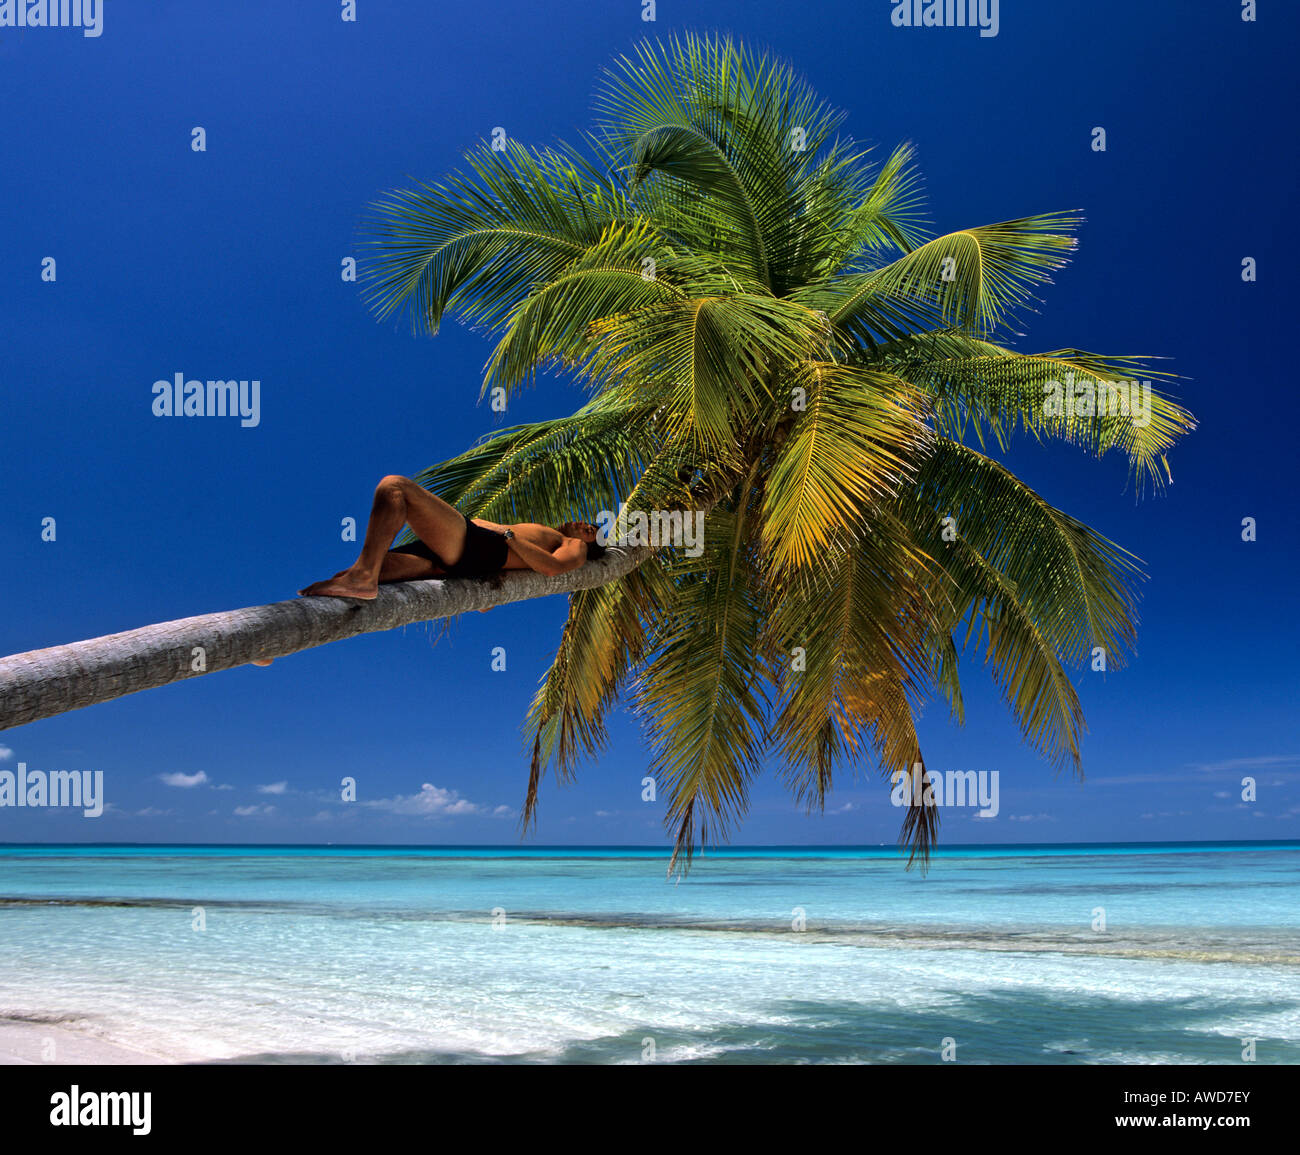 Young man resting in a palm tree on the beach, Maldives, Indian Ocean - Stock Image